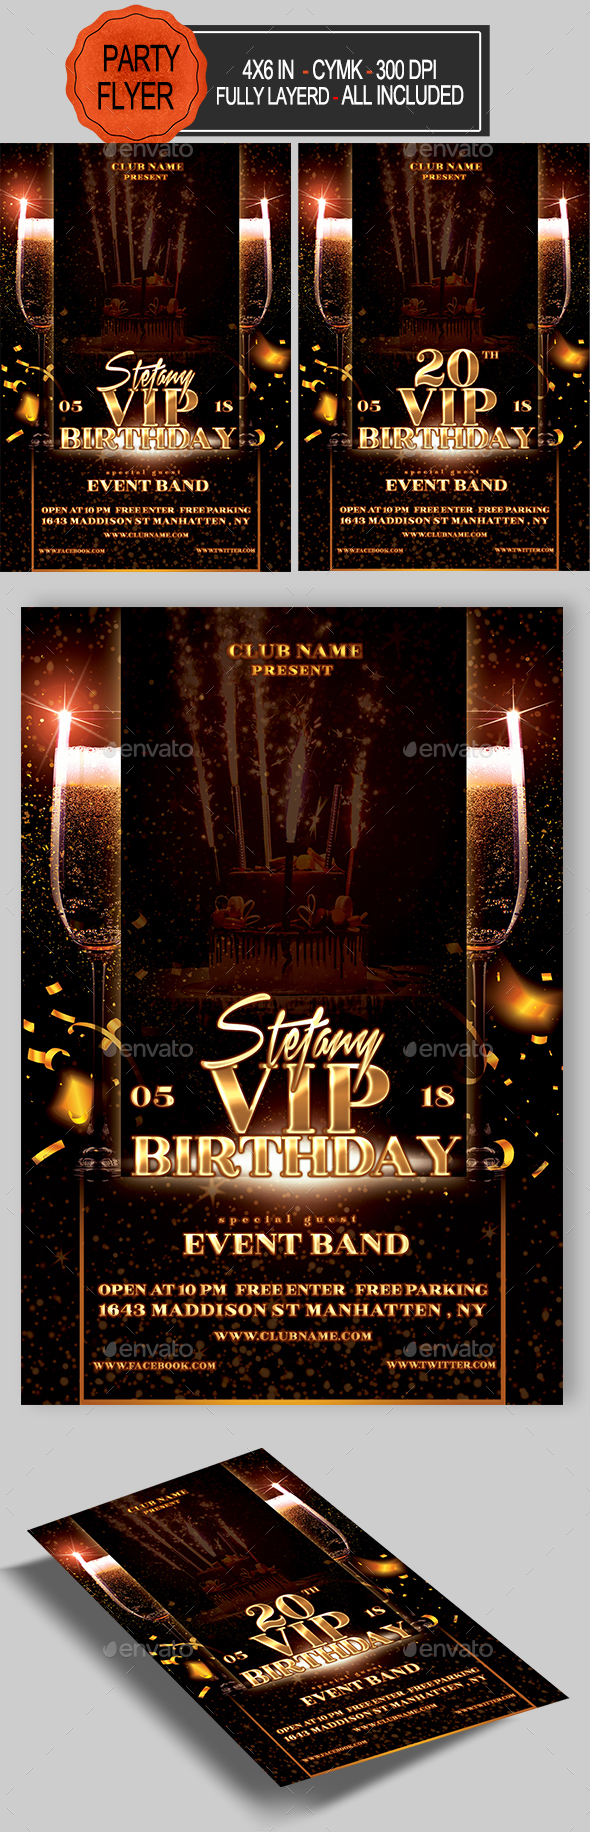 VIP Birthday Flyer - Clubs & Parties Events